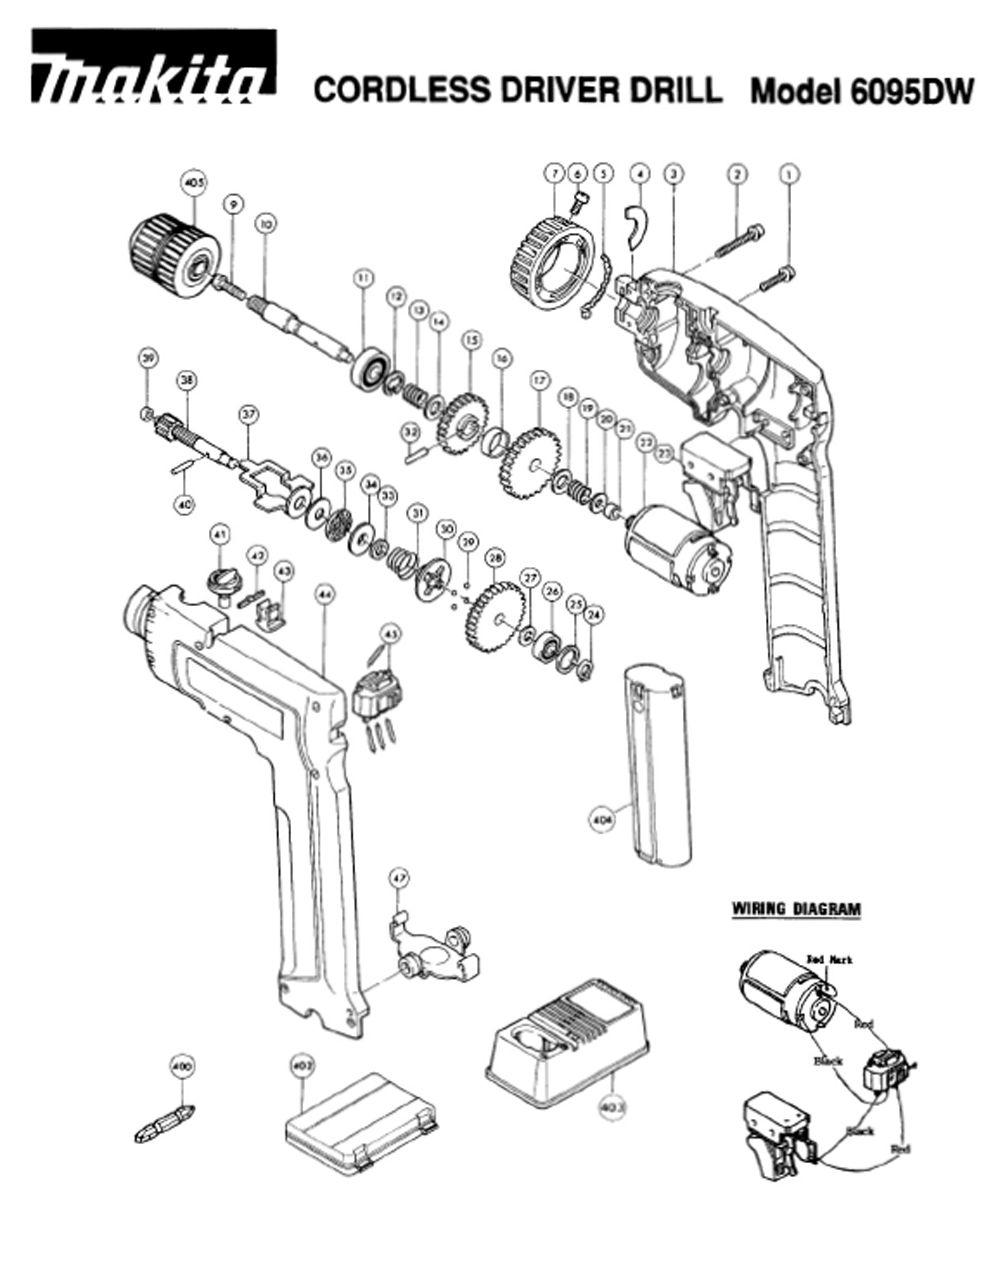 makita cordless drill parts diagram pictures to pin on pinterest Toro Wiring Diagrams  Romex Wiring Diagrams makita 9227c wiring diagram Ao Smith Wiring Diagrams